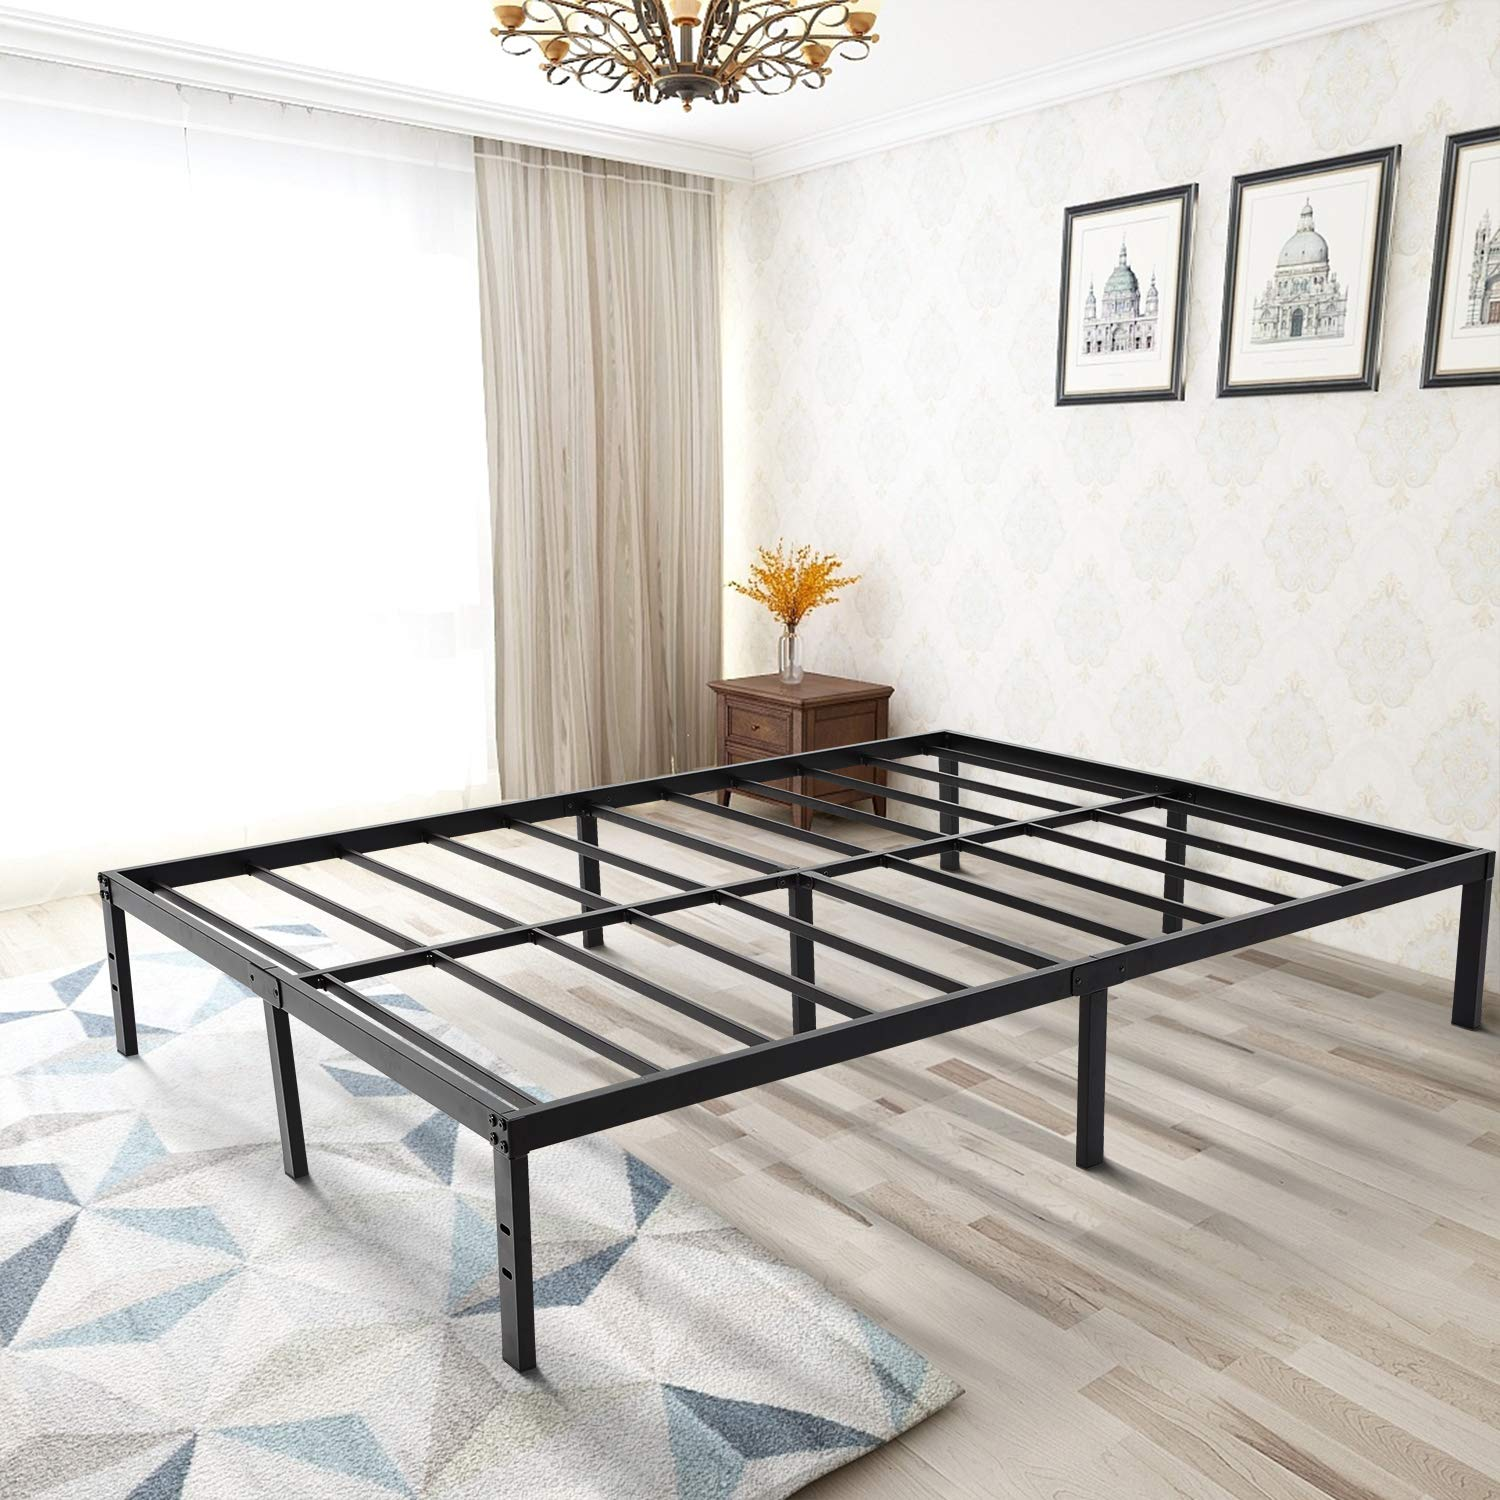 zizin Queen Bed Frame Platform/14 Inch/Heavy Duty/Easy Assembly/Anti-Slip/Mattress Foundation/Steel Slats (Queen)